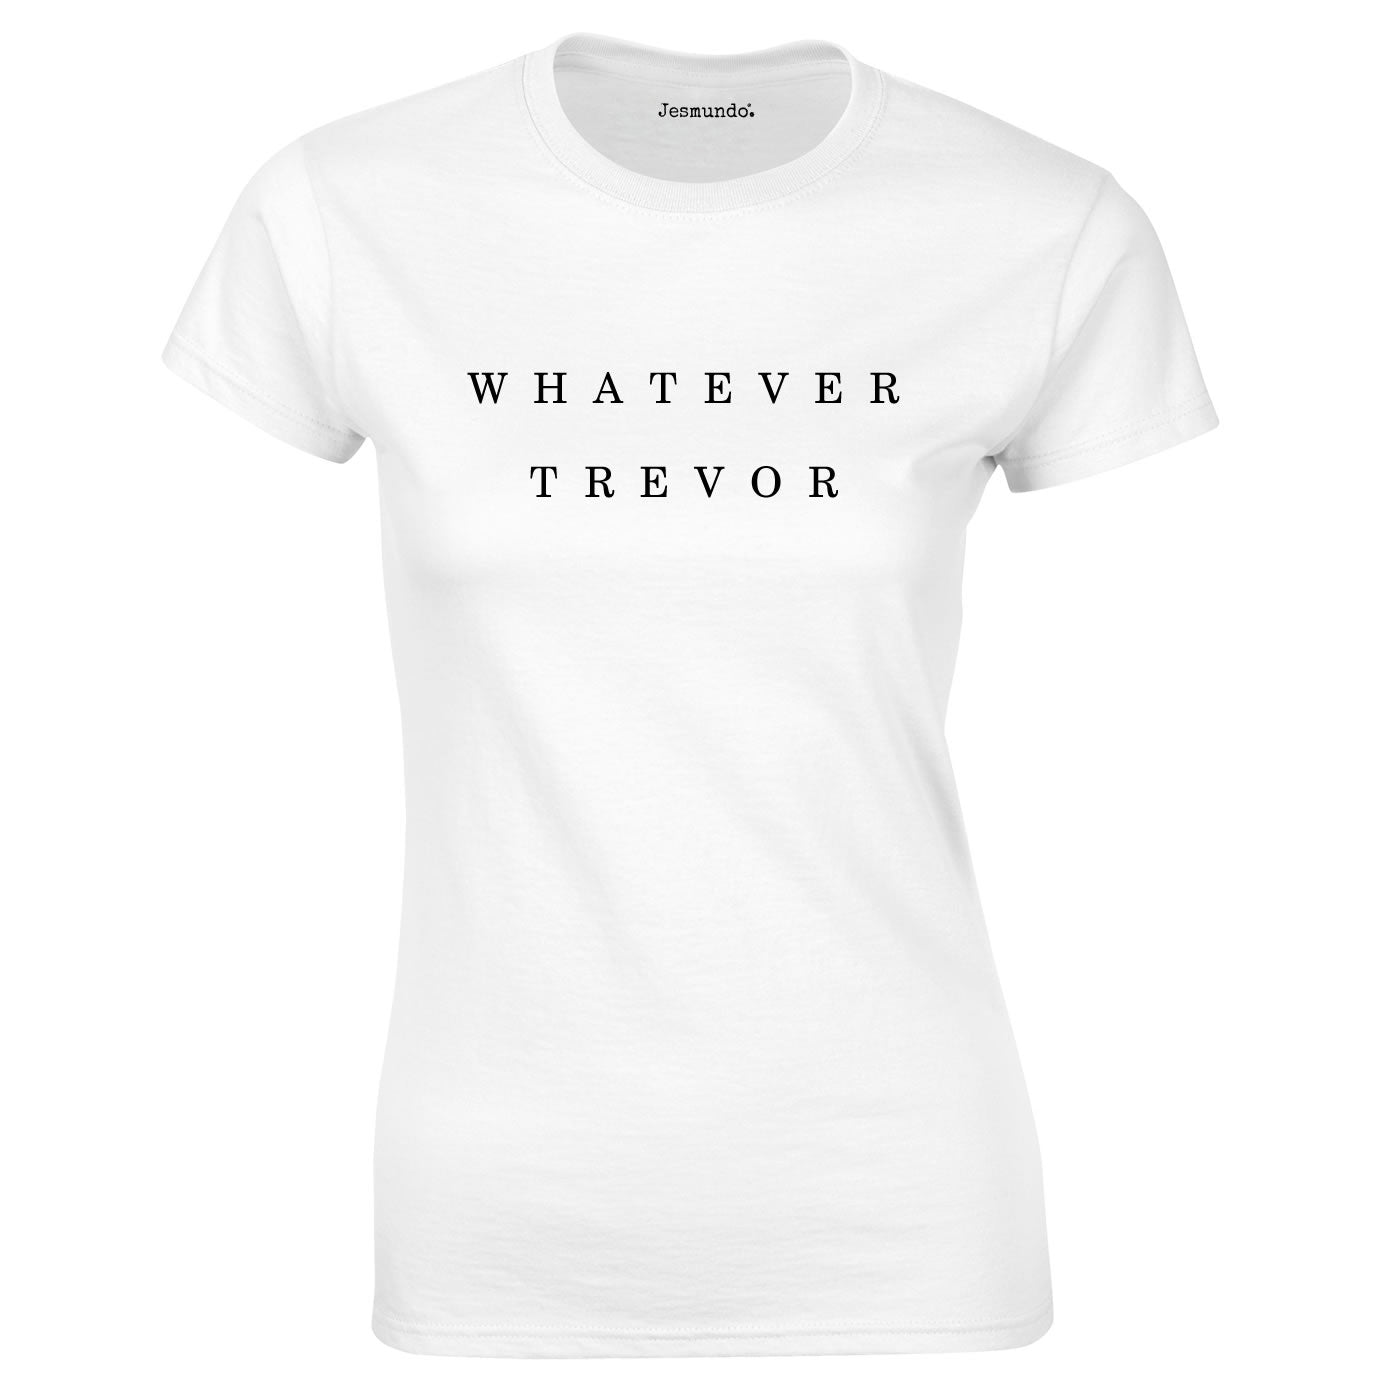 Whatever Trevor T Shirt